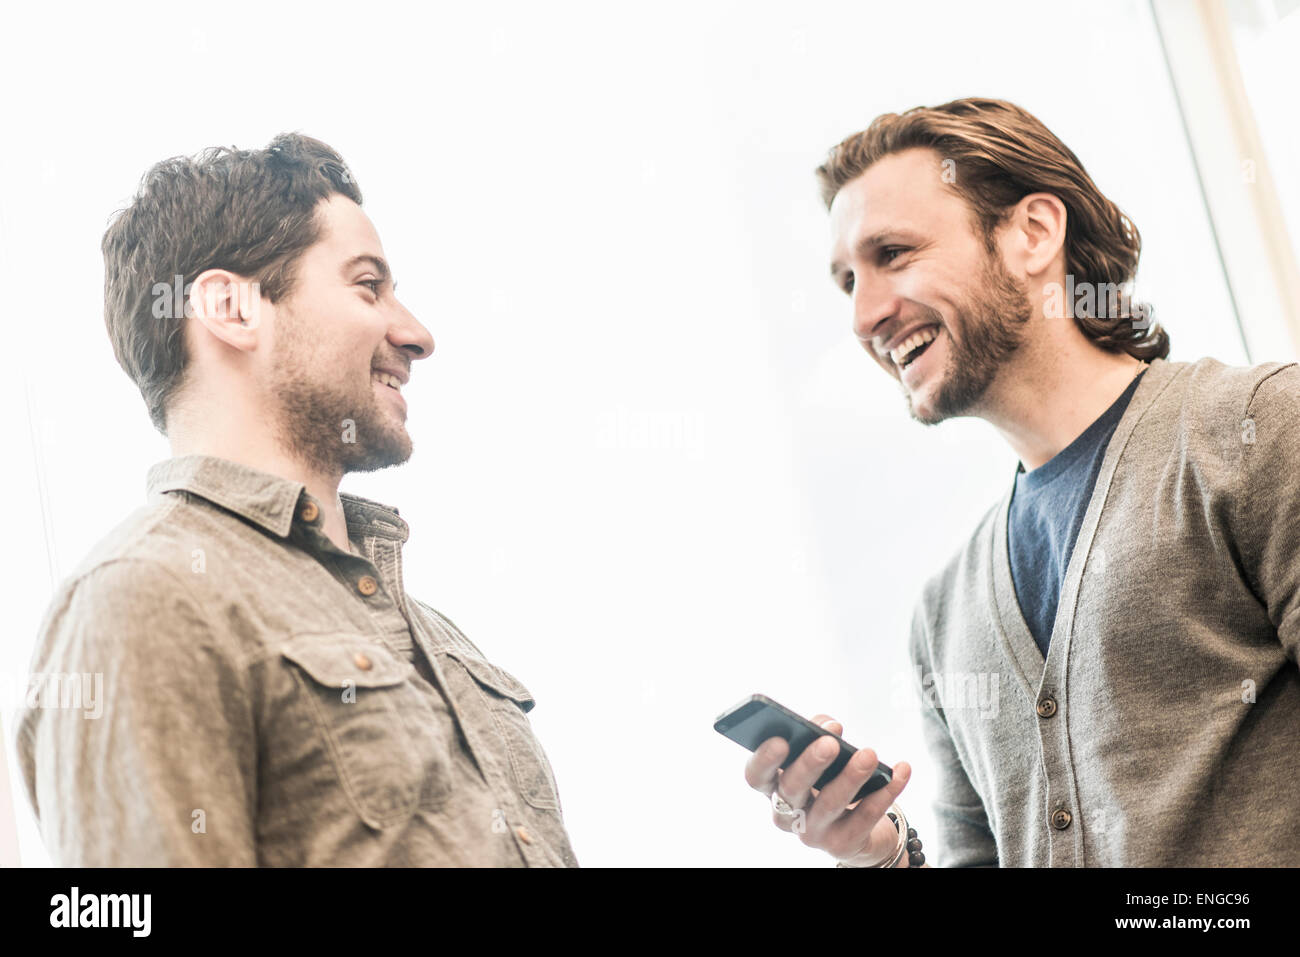 Two men smiling, one holding a smart phone. - Stock Image